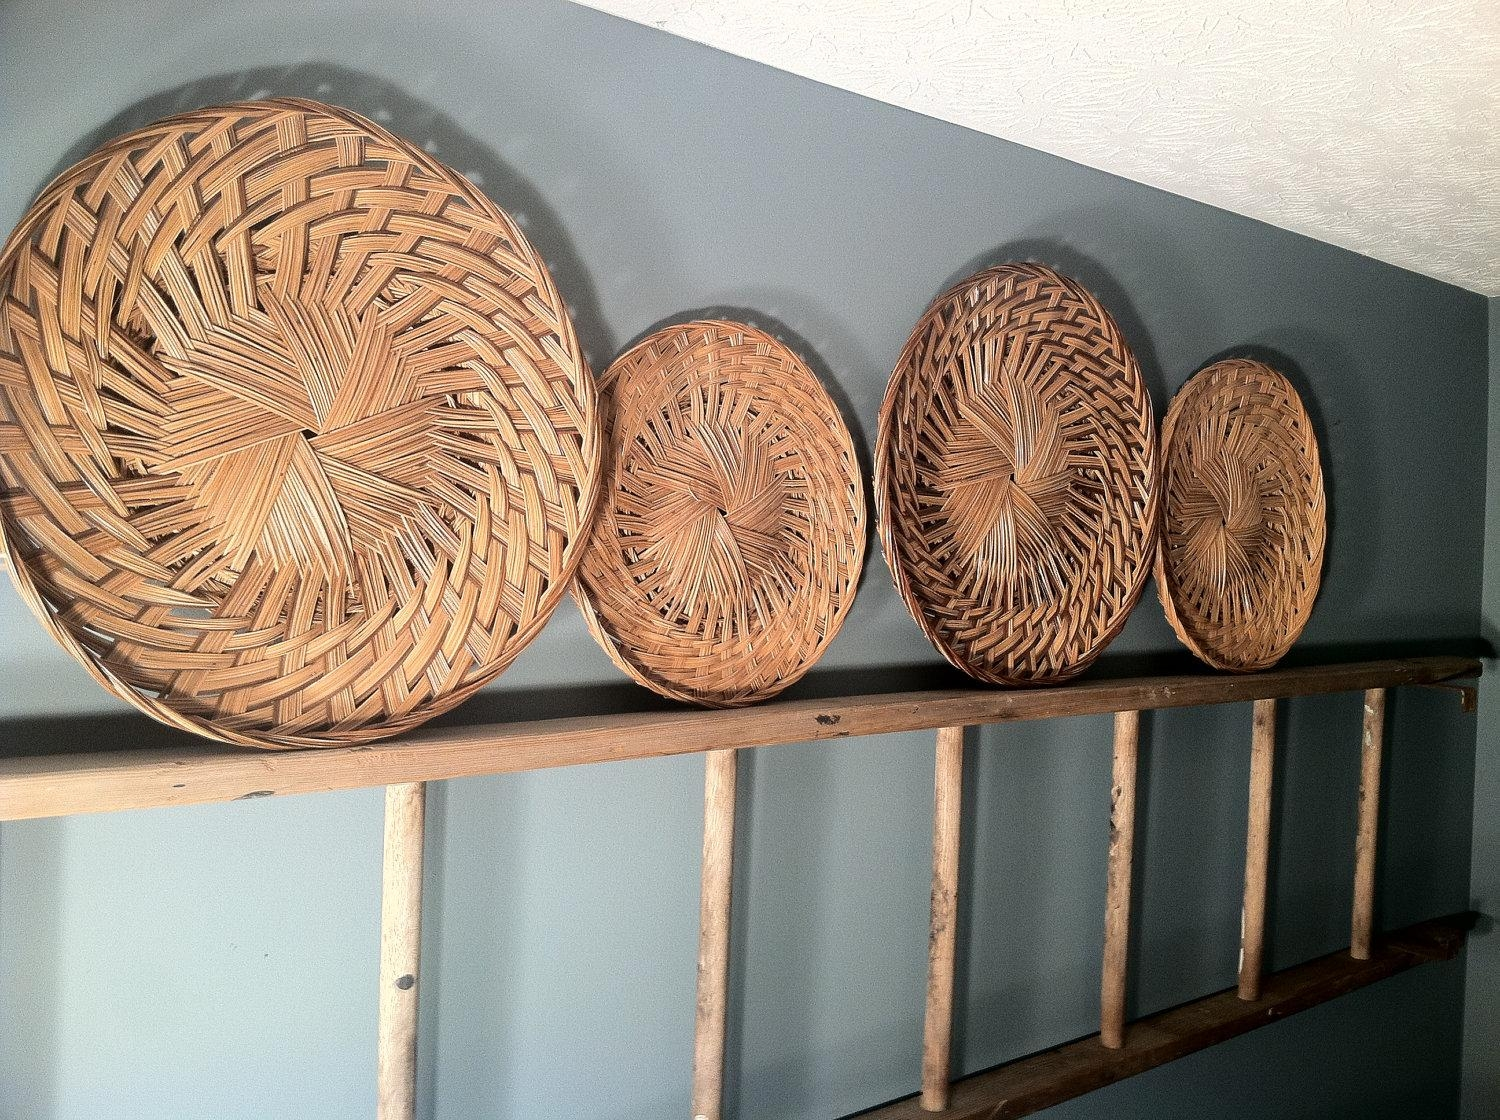 Wall Decor: Wicker Wall Decor Images. Trendy Wall (Image 15 of 20)